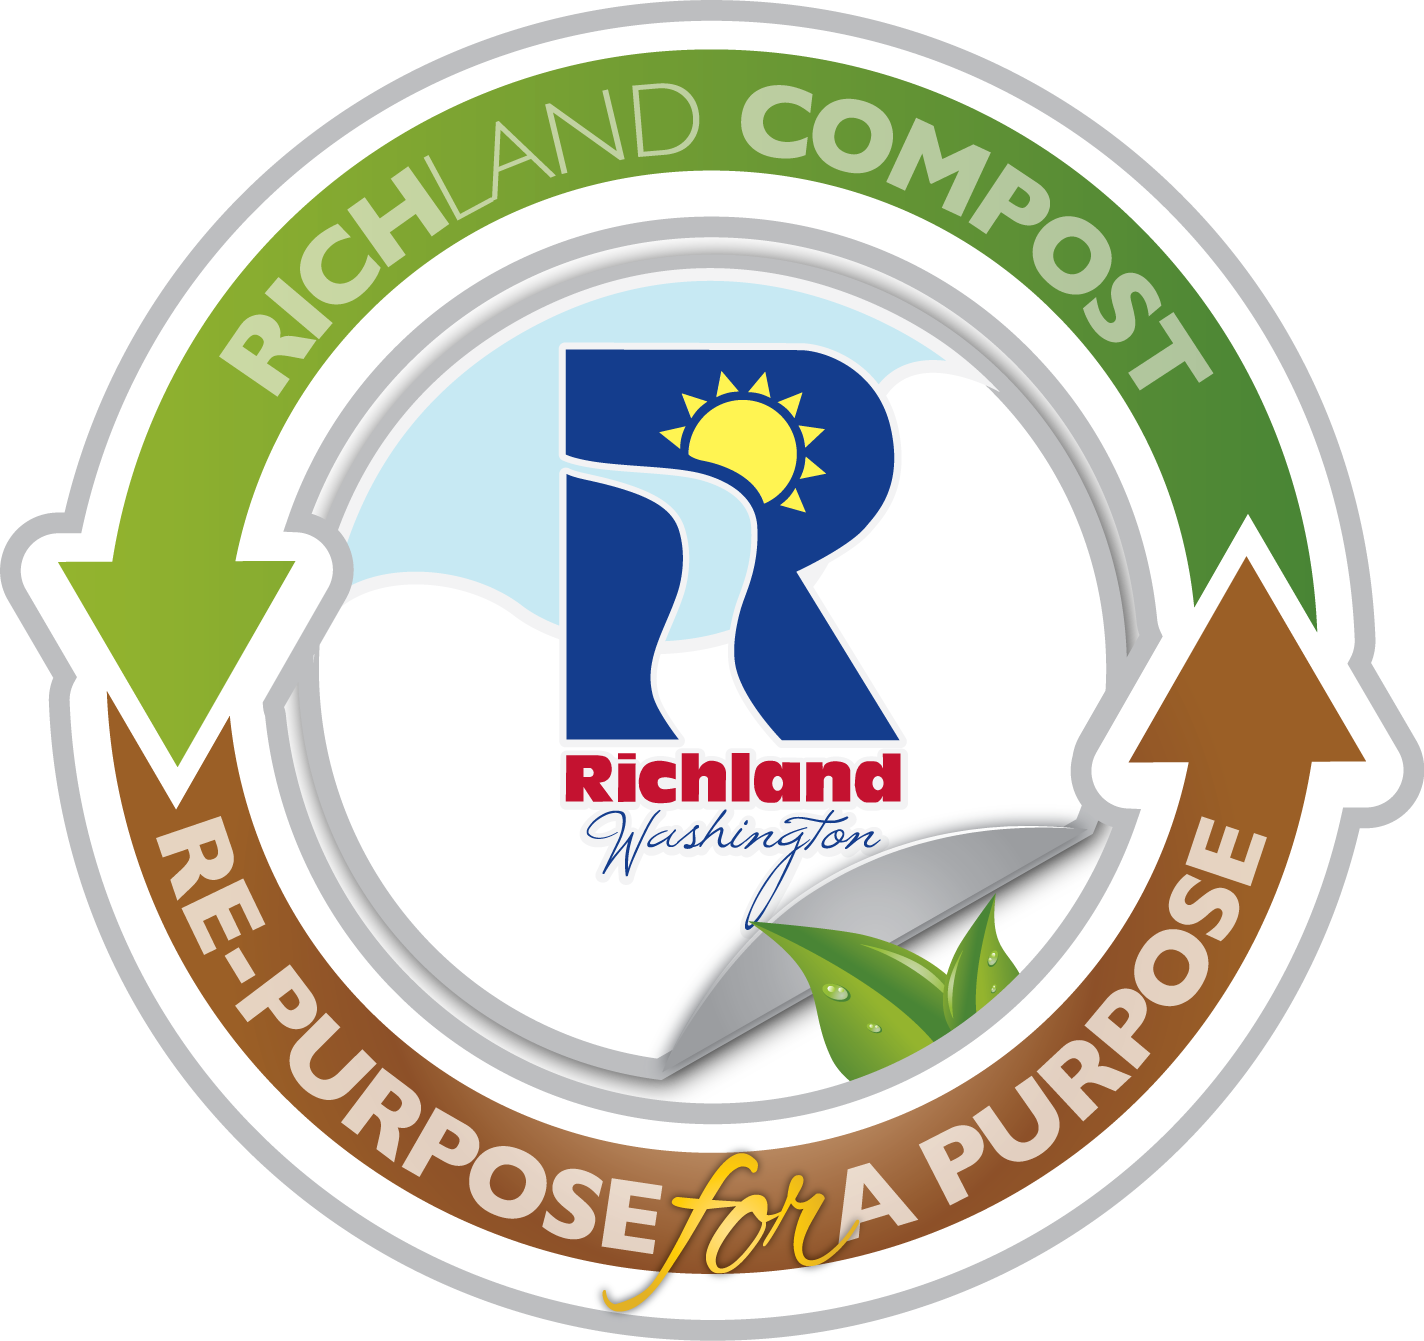 image of Richland's compost logo